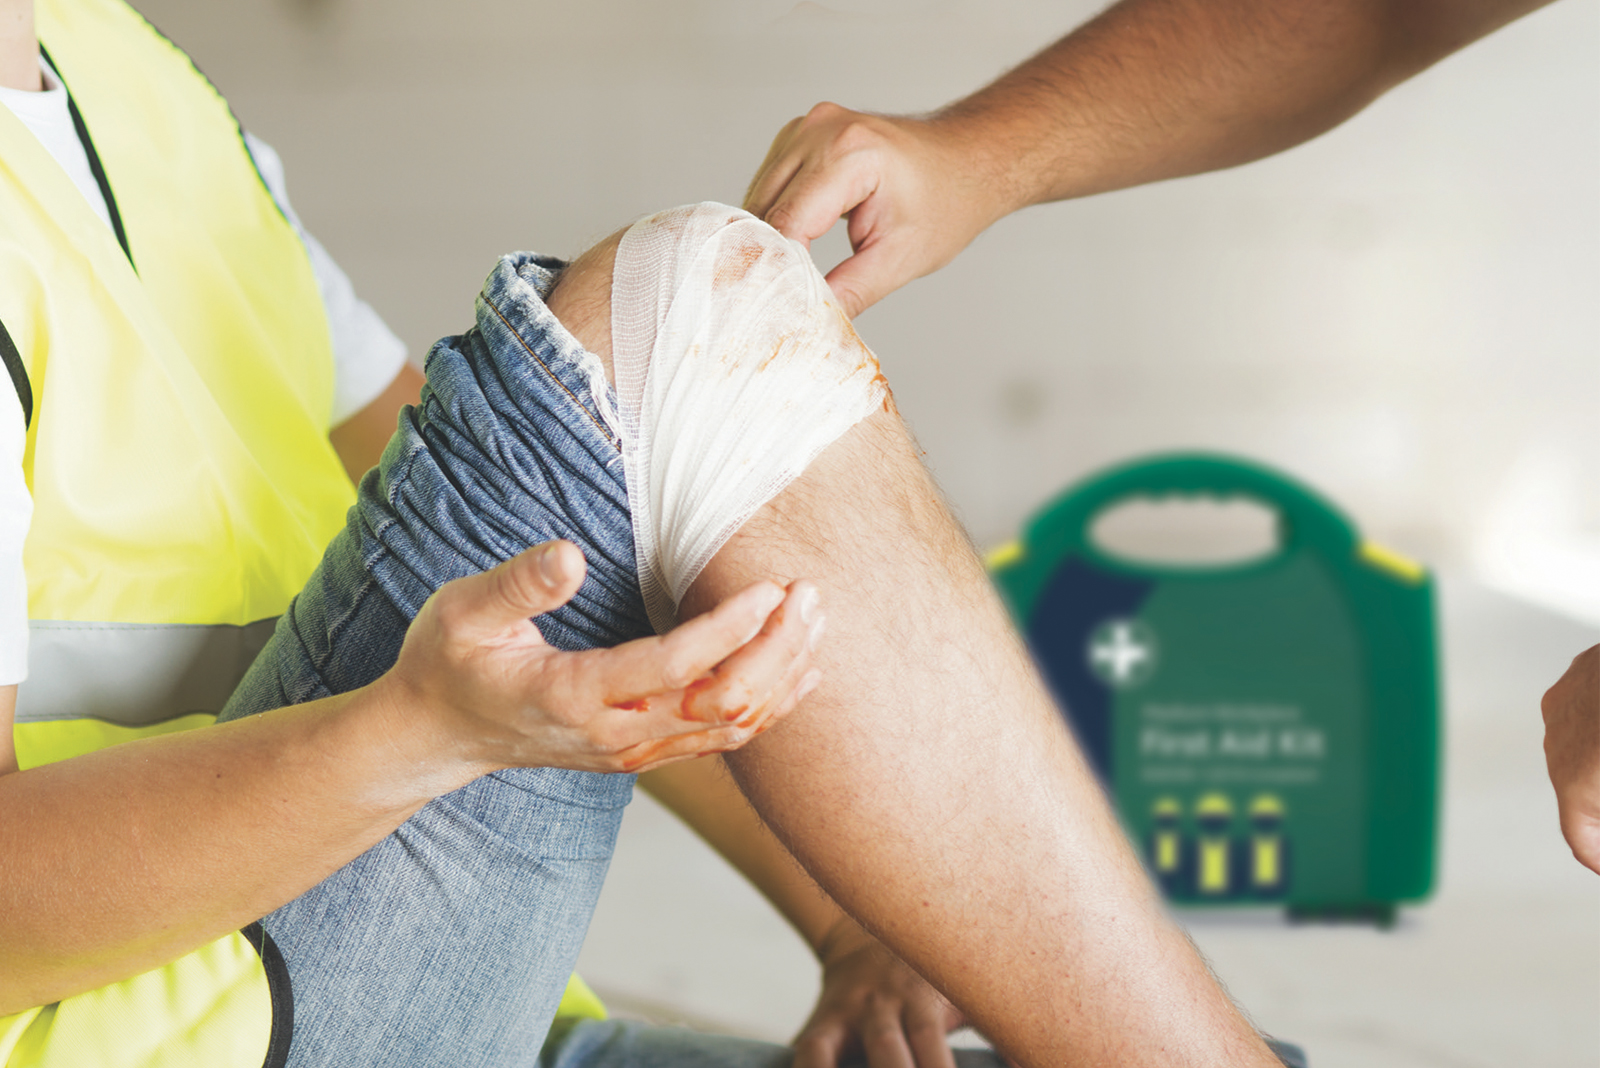 Arco produces NEW expert guide on First Aid in the workplace